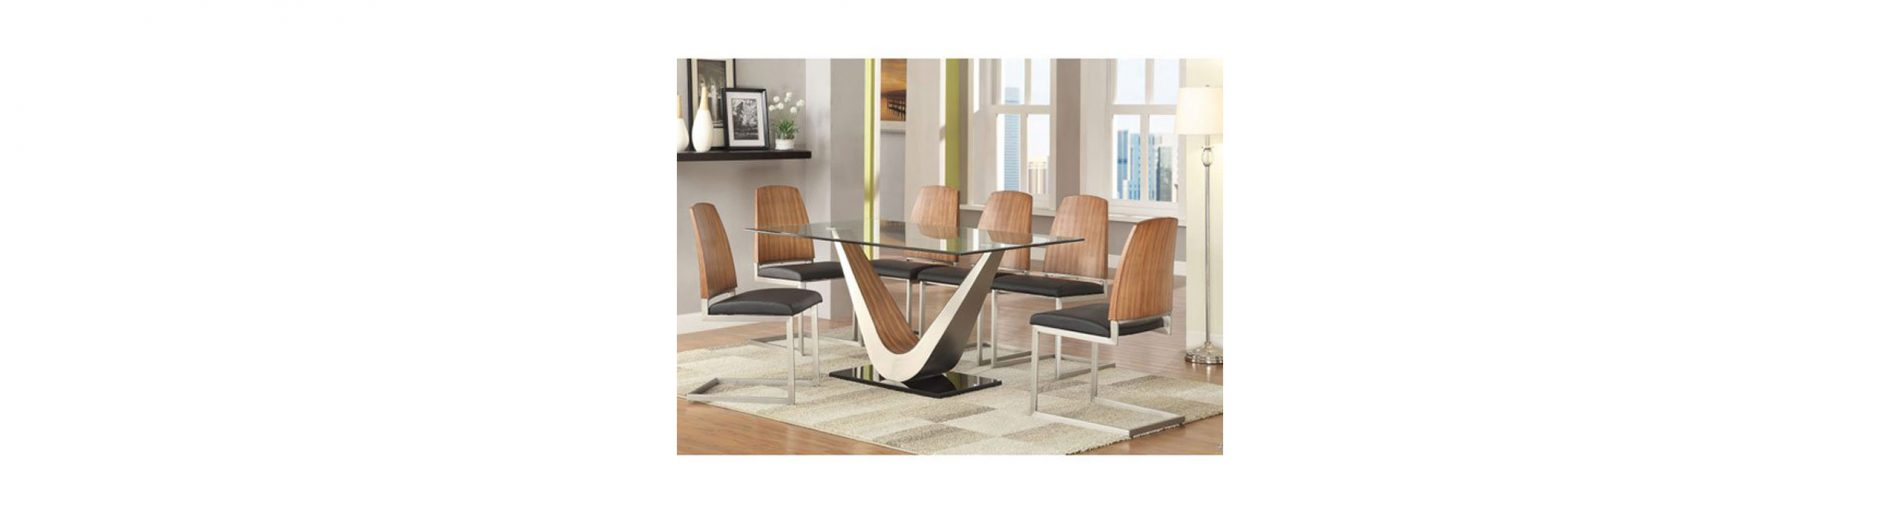 Considerations On Trendy Dining Furniture